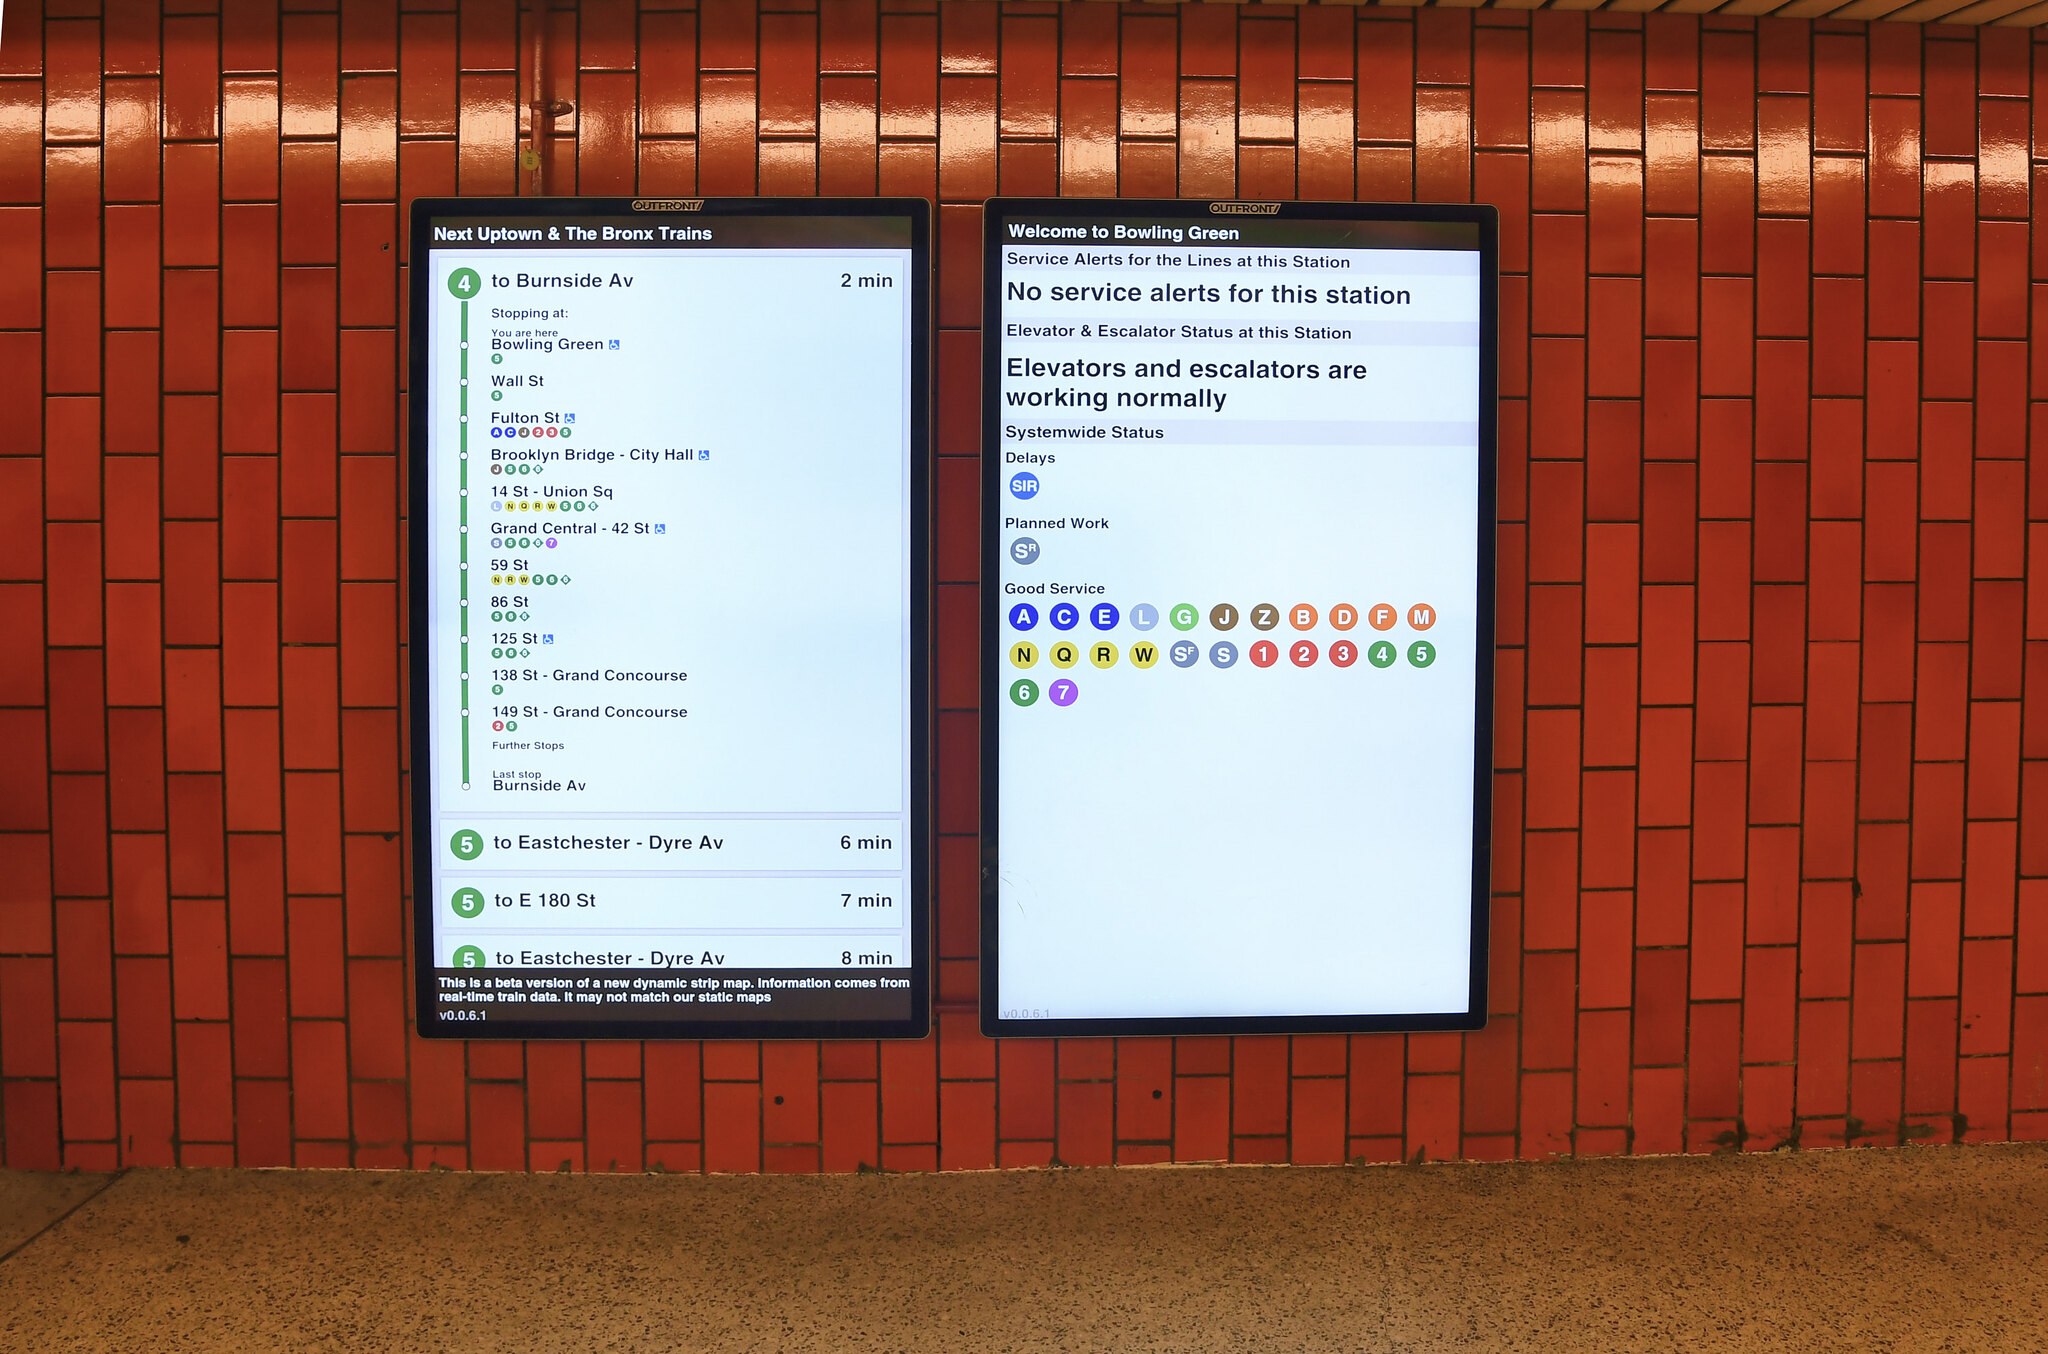 Two digital screens in the subway mounted over red tile. Screens show stop information and system status